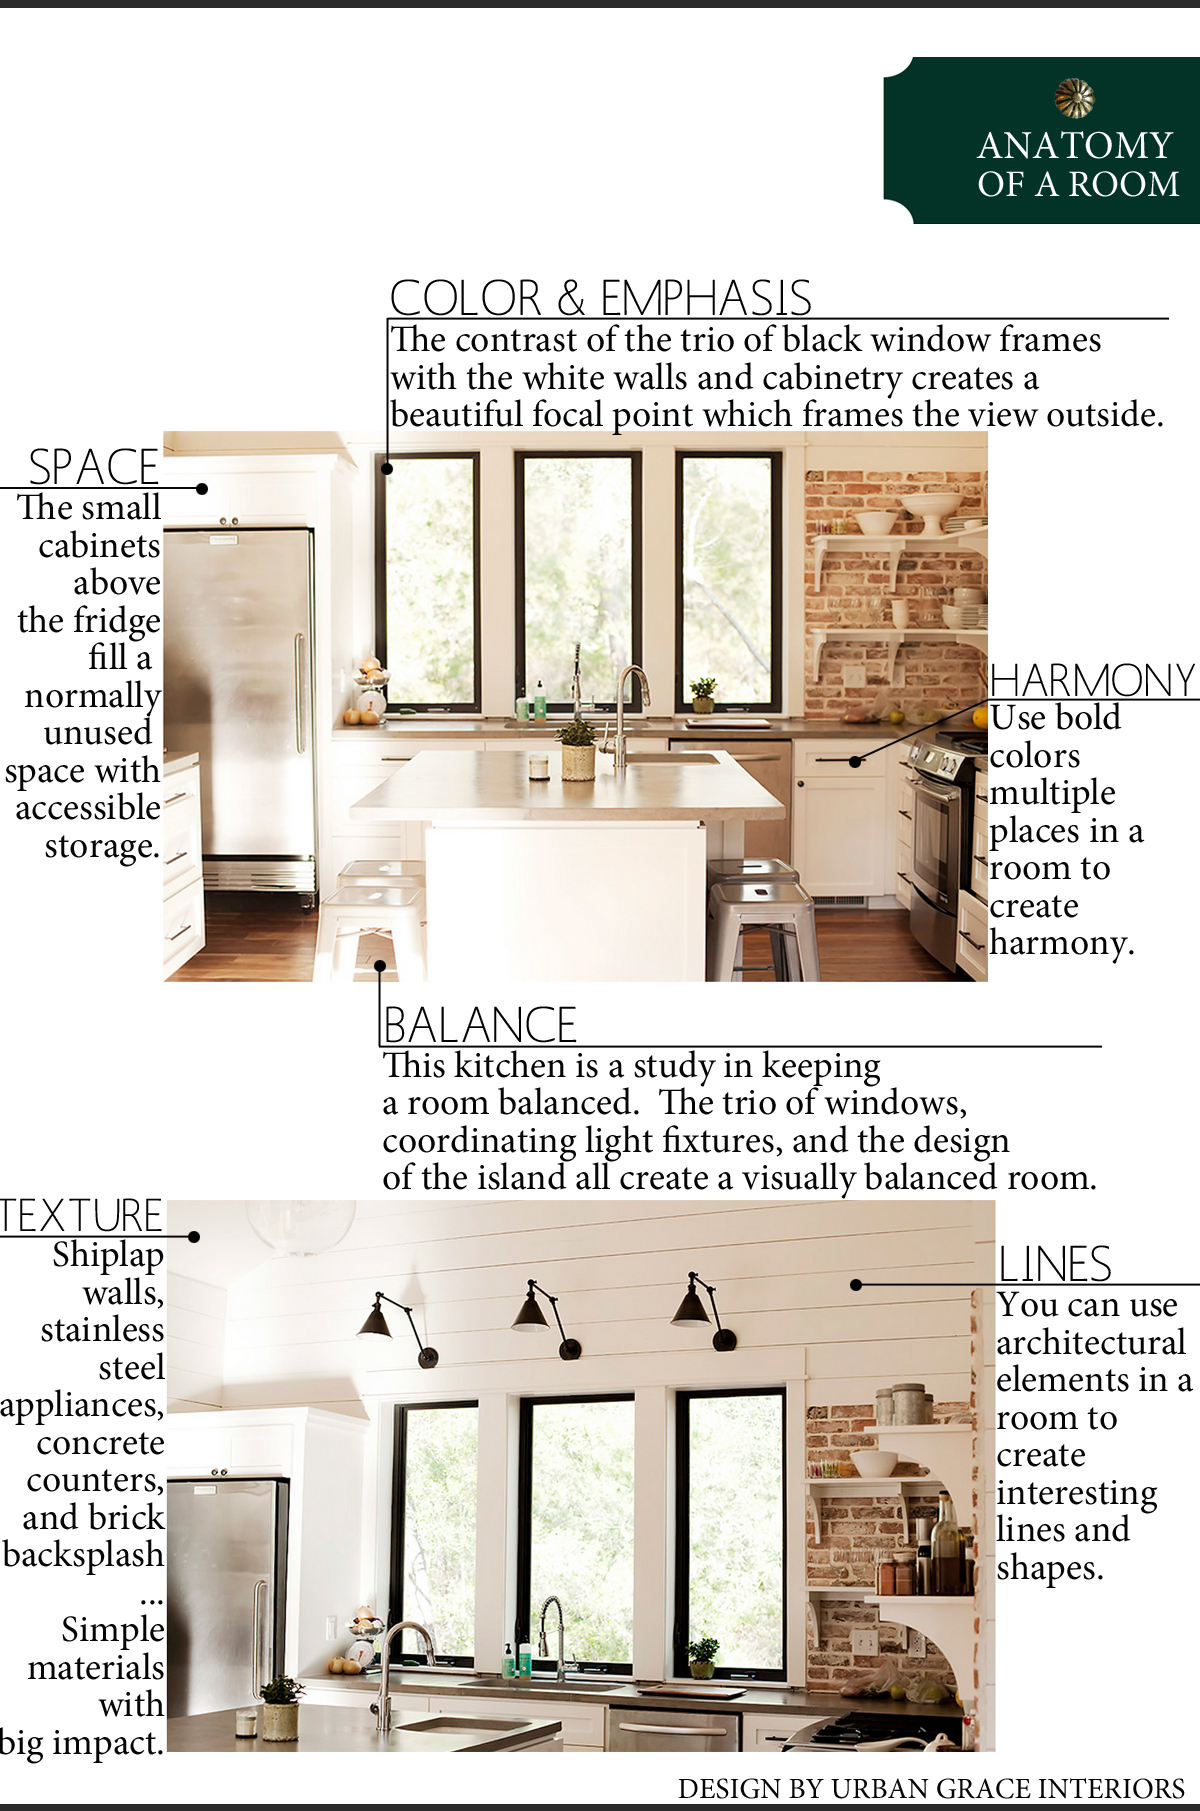 urban grace interiors the anatomy of design inspirational anatomy of a kitchen sink   taste  rh   thetasteemaker com